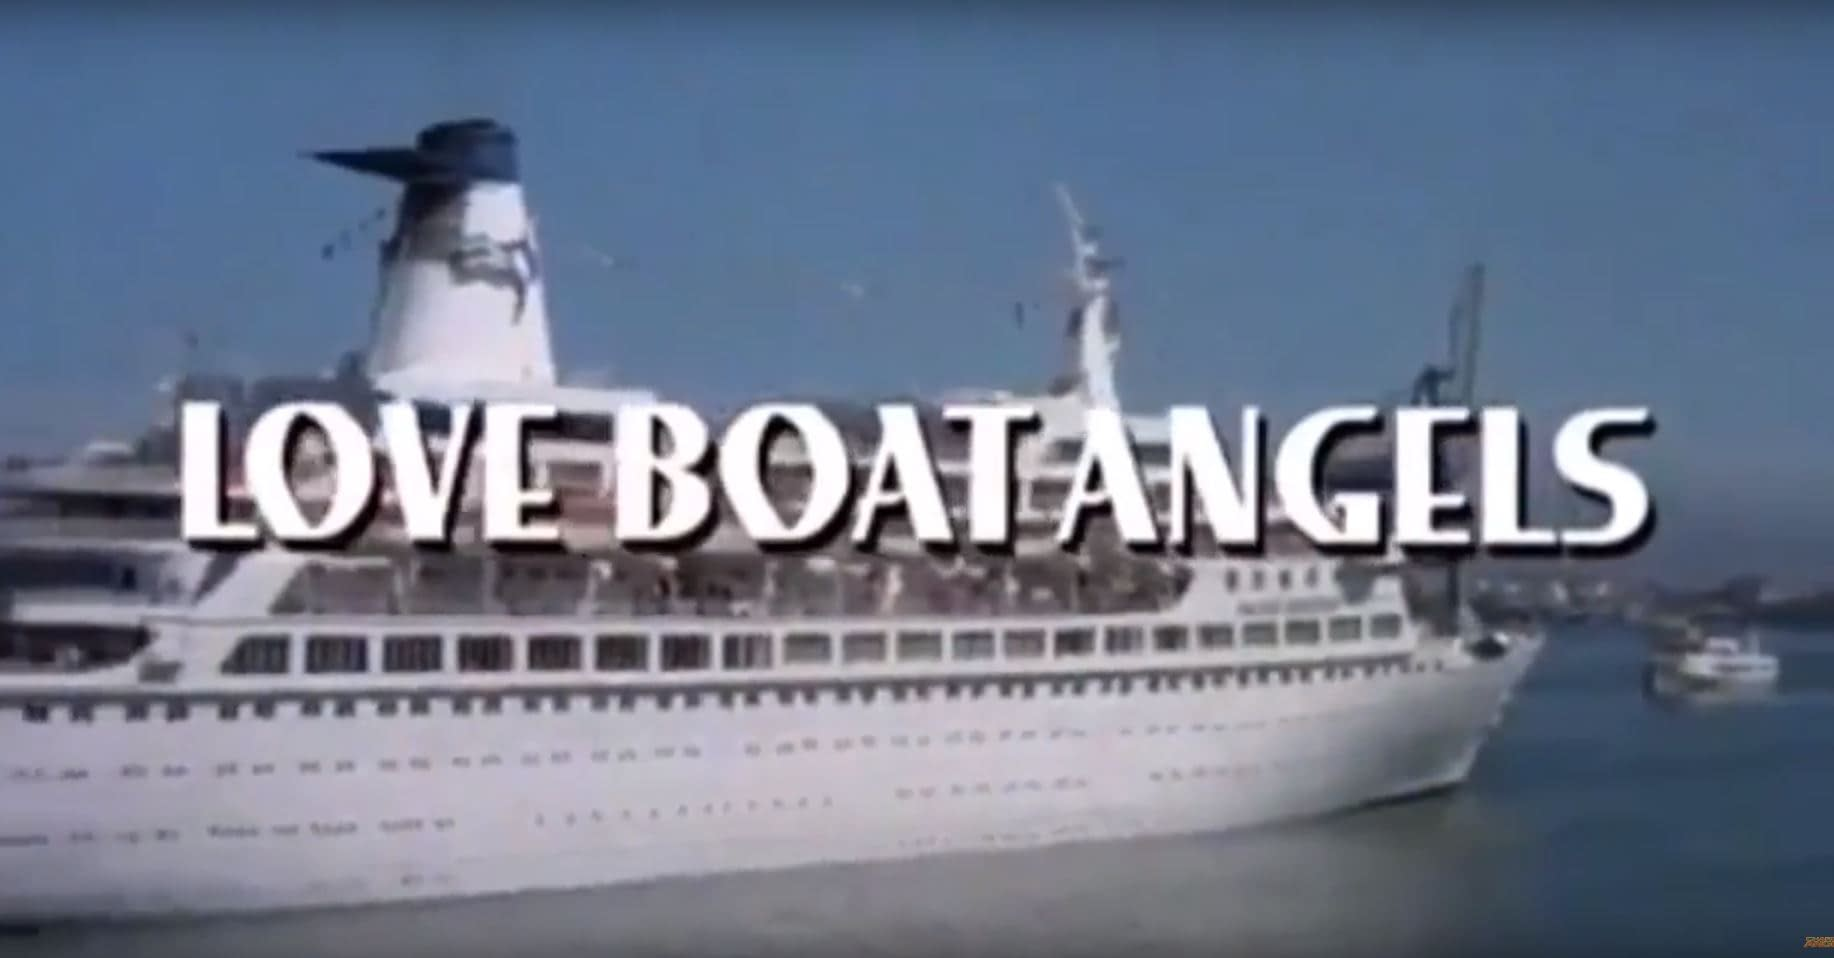 """""""Charlie's Angels"""" Once Became """"Love Boat Angels:"""" the Greatest Turkey to Ever Set Sail"""